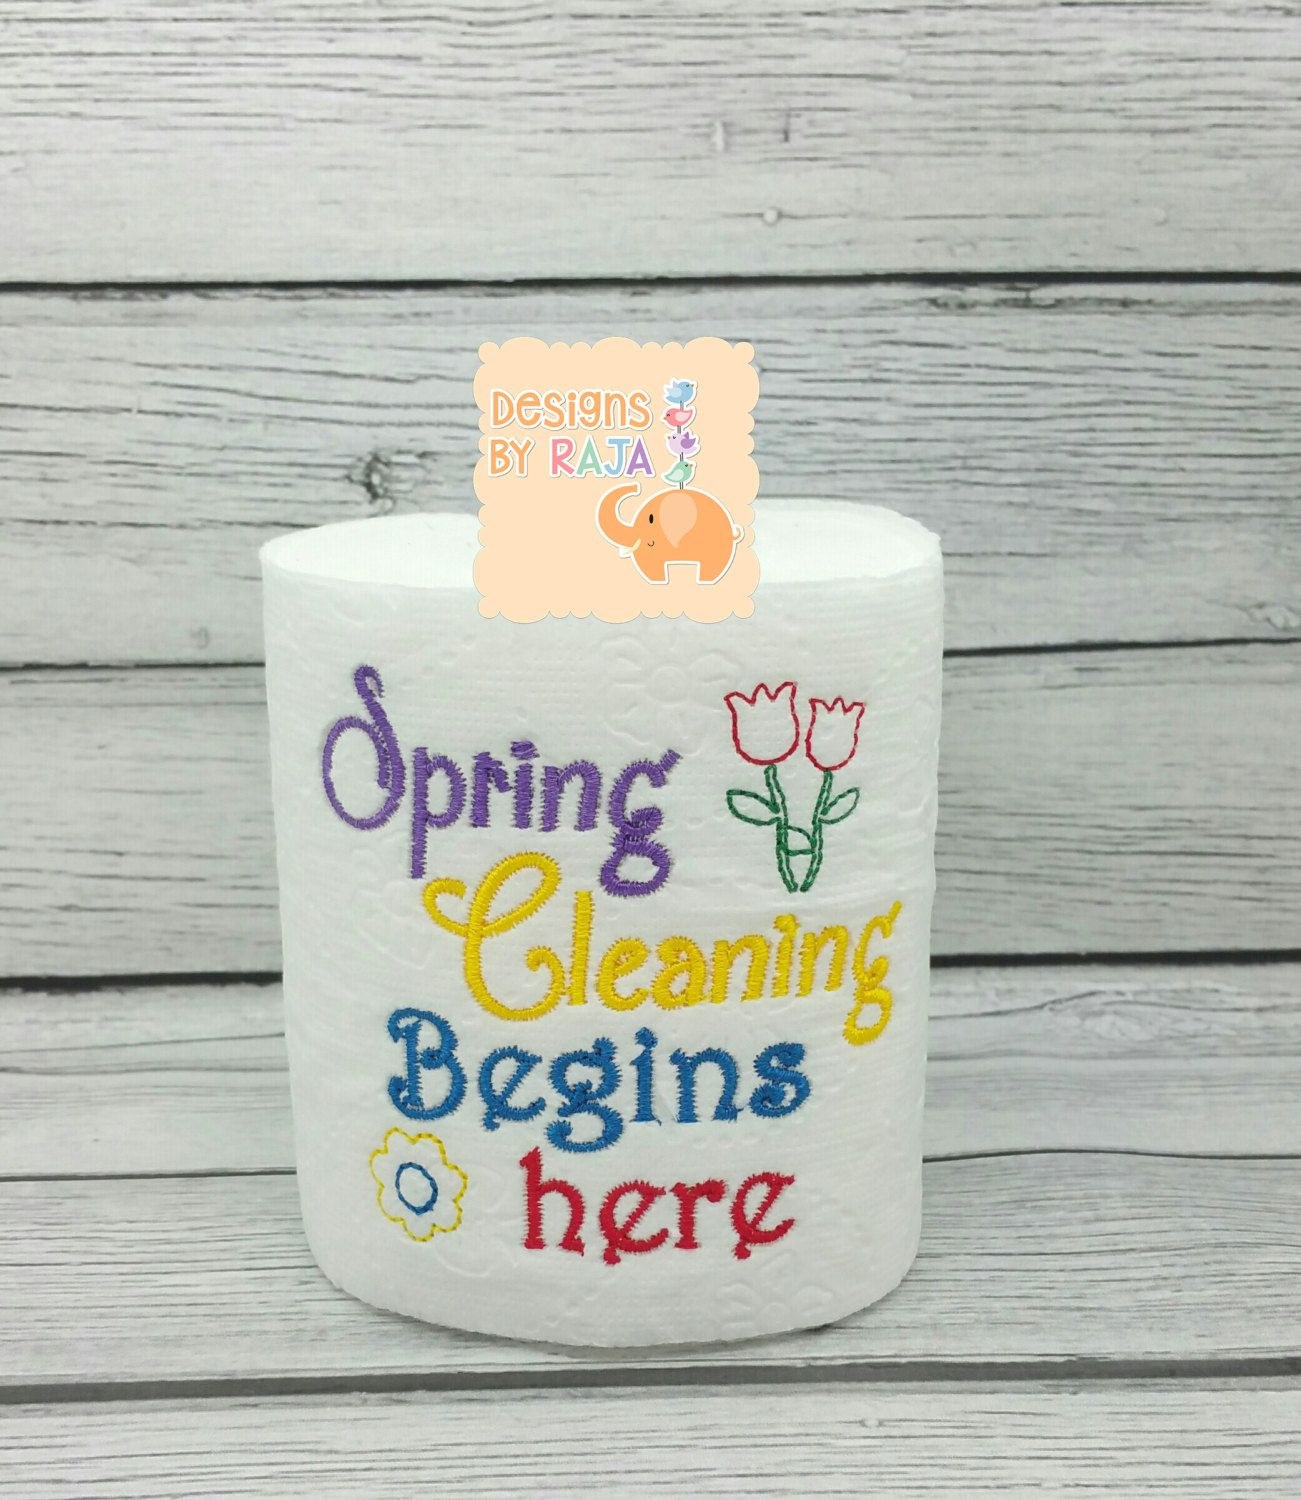 Embroidery designs for toilet paper - Spring Cleaning Embroidered Toilet Paper Birthday Gift Mom Gifts For Her Funny Gag Gift White Elephant Bathroom Decorations Jo